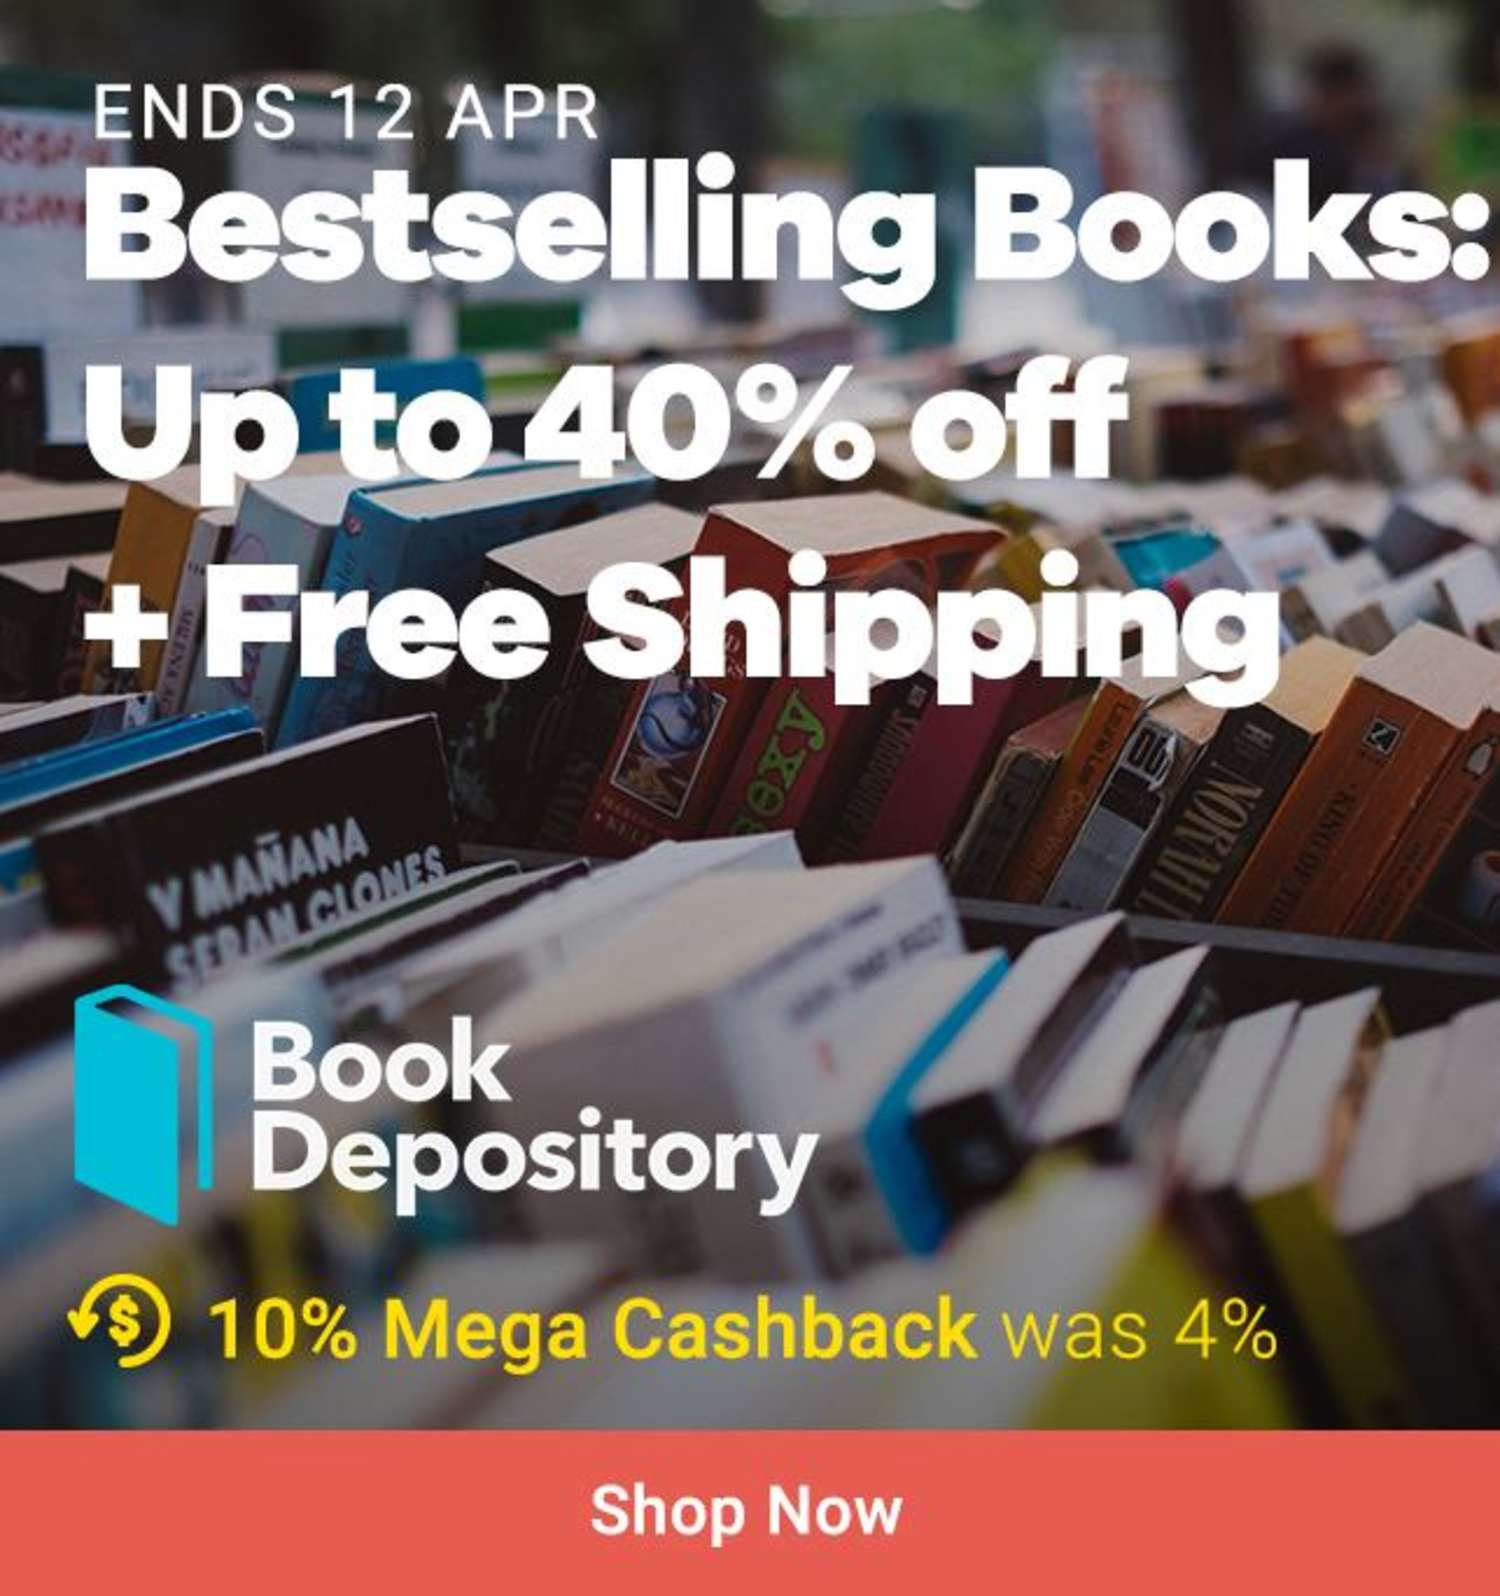 Book Depository: Bestselling Books 40% off + Free Shipping